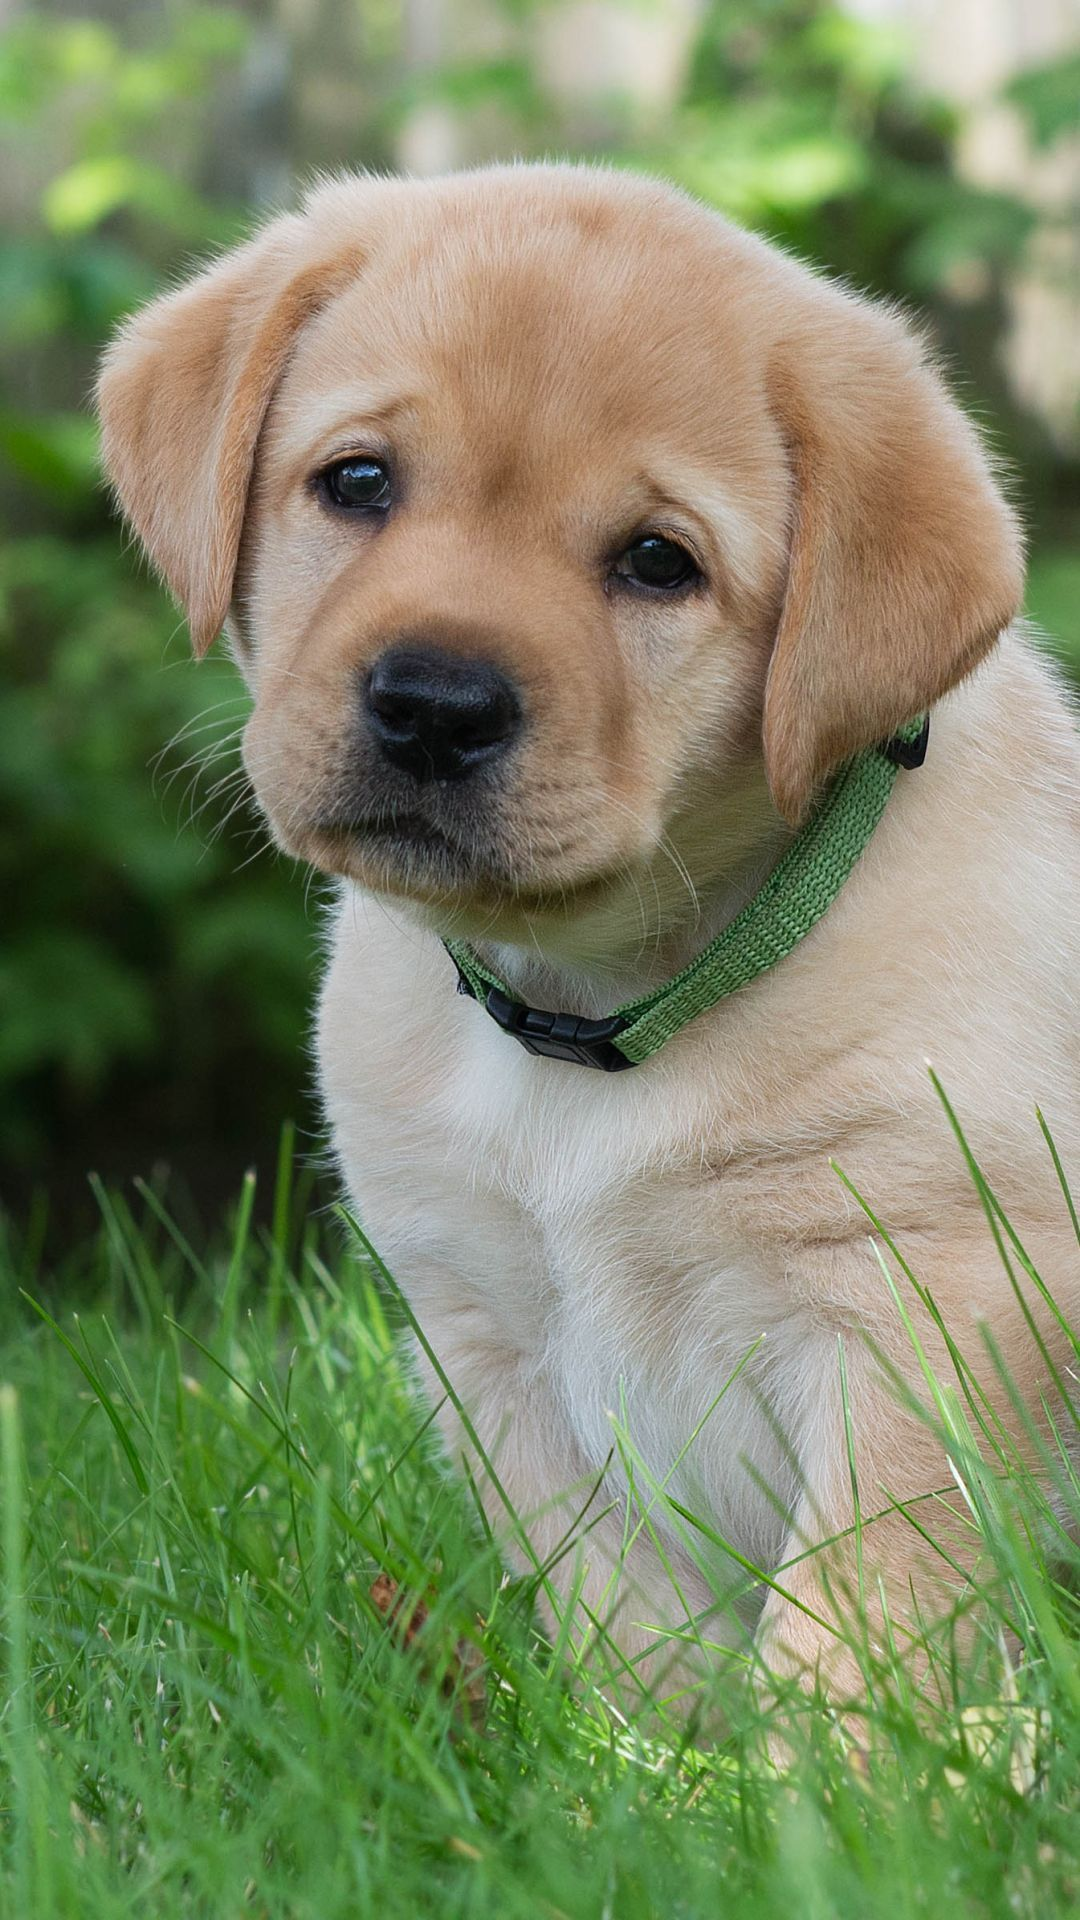 Baby Dog Wallpaper Mobile Animals Wallpapers Ideas Golden Retriever Wallpaper Dogs Golden Retriever Baby Dogs